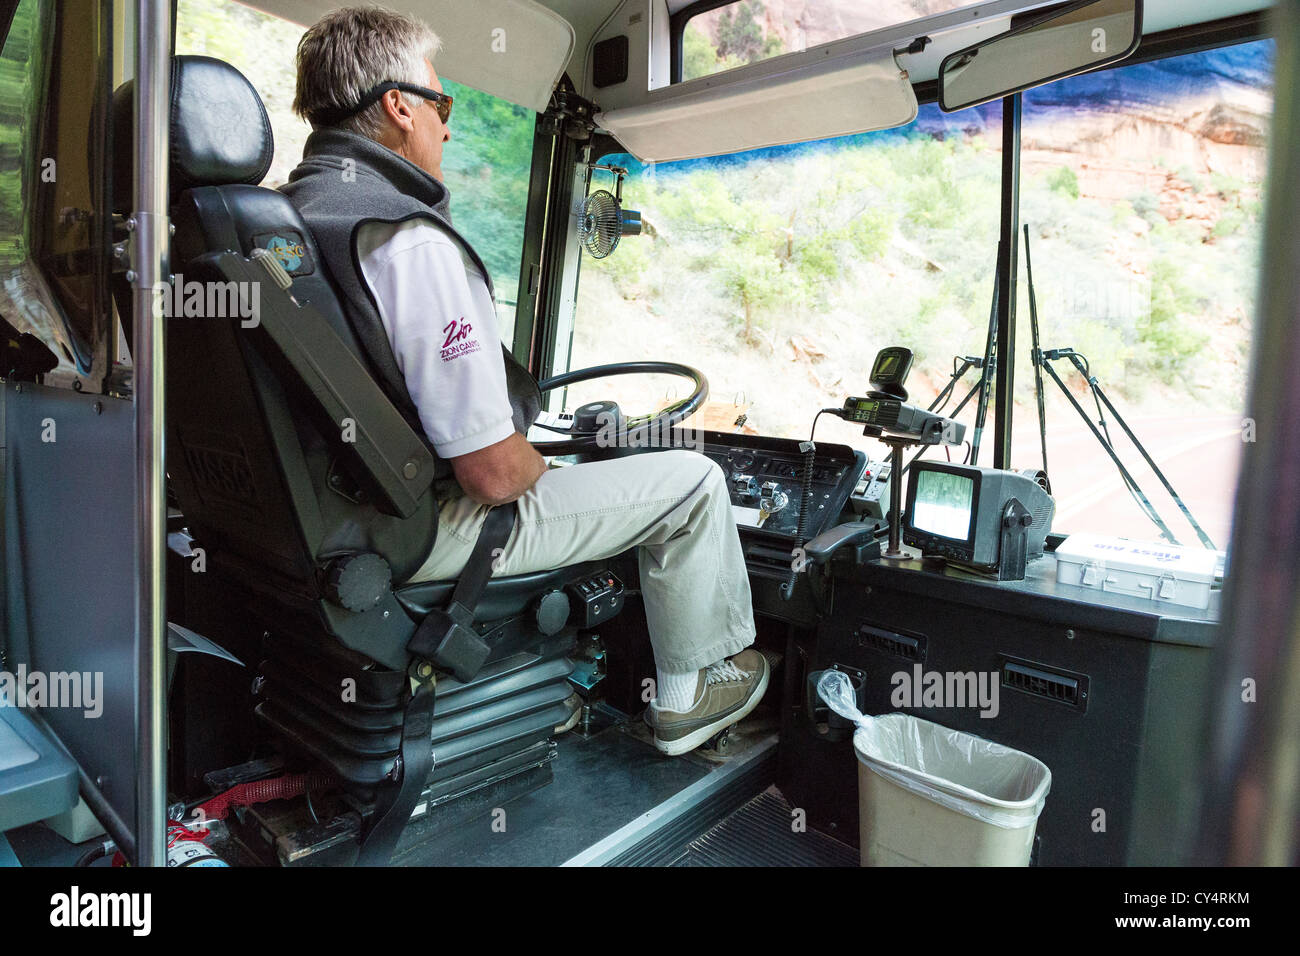 Shuttle driver in Zion National Park, Utah - Stock Image